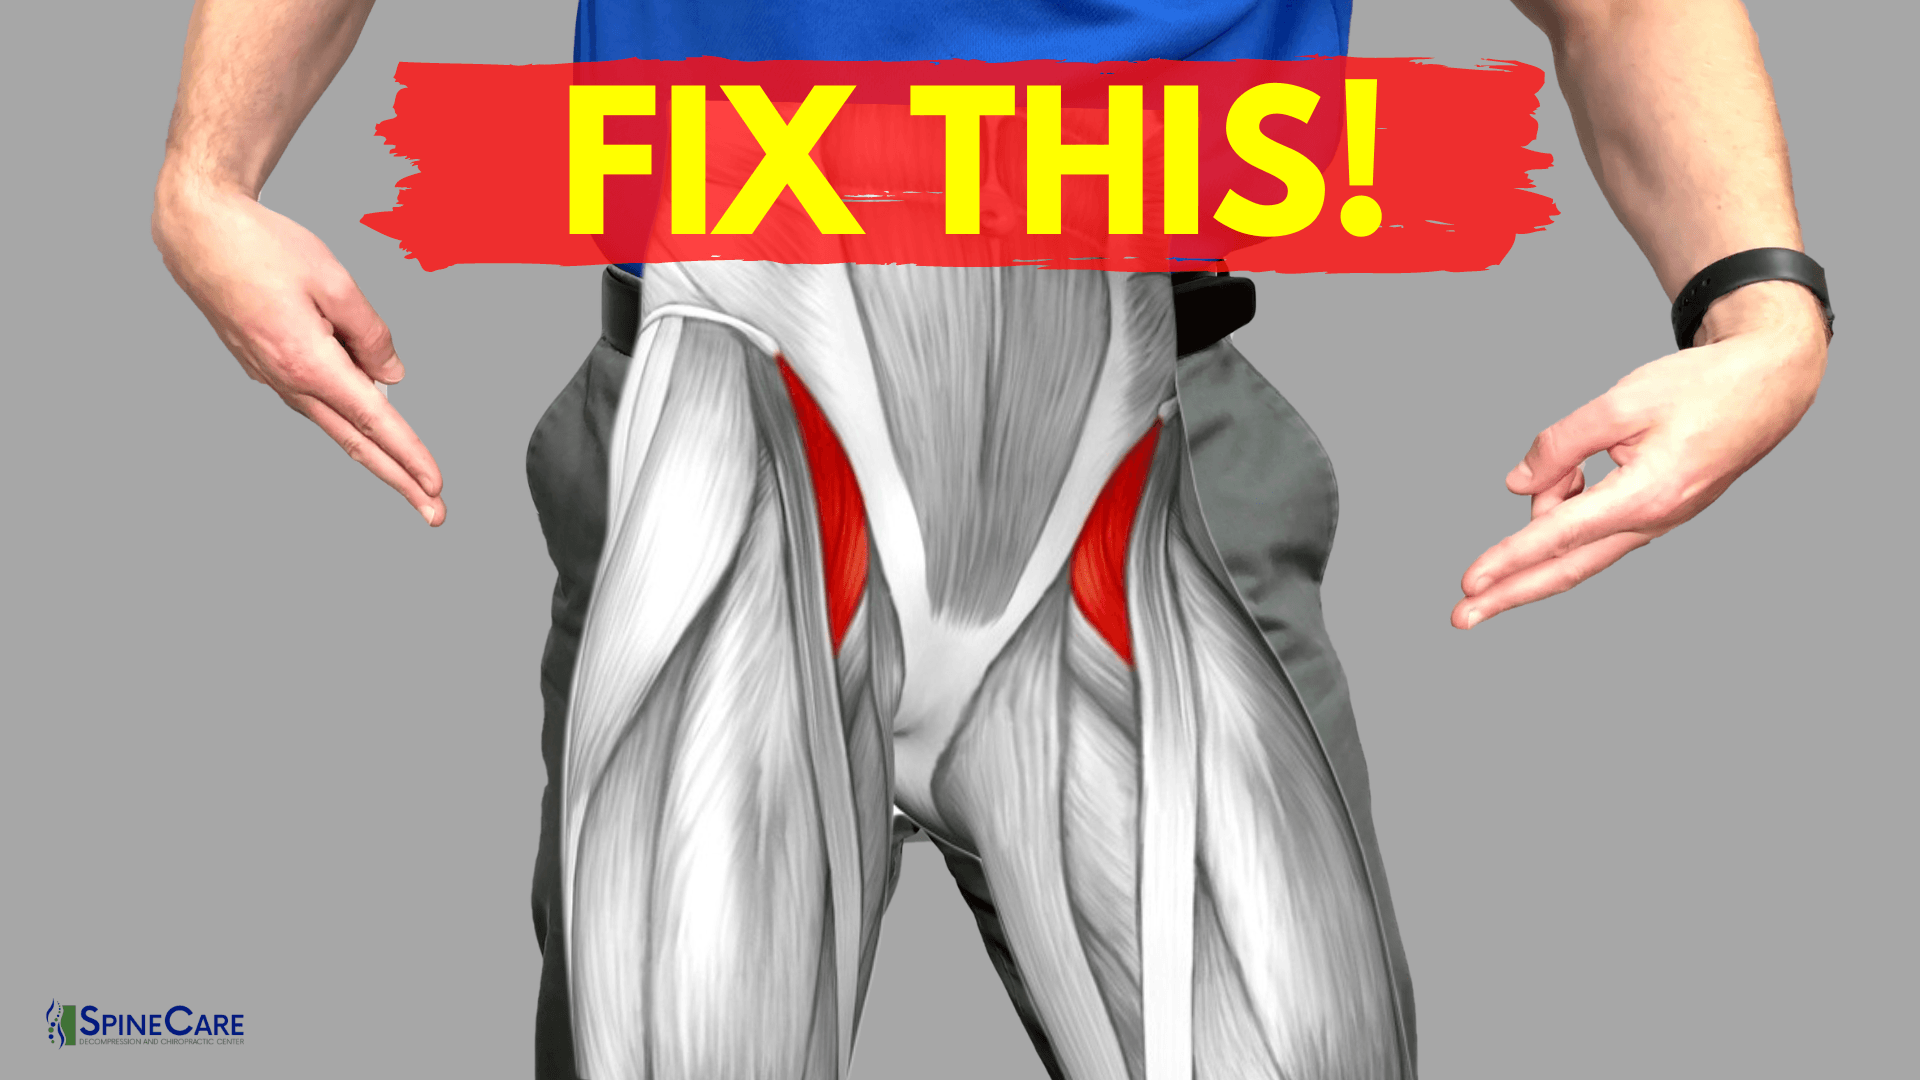 How to Relieve Hip Flexor Pain in 30 SECONDS | SpineCare | St. Joseph, Michigan Chiropractor